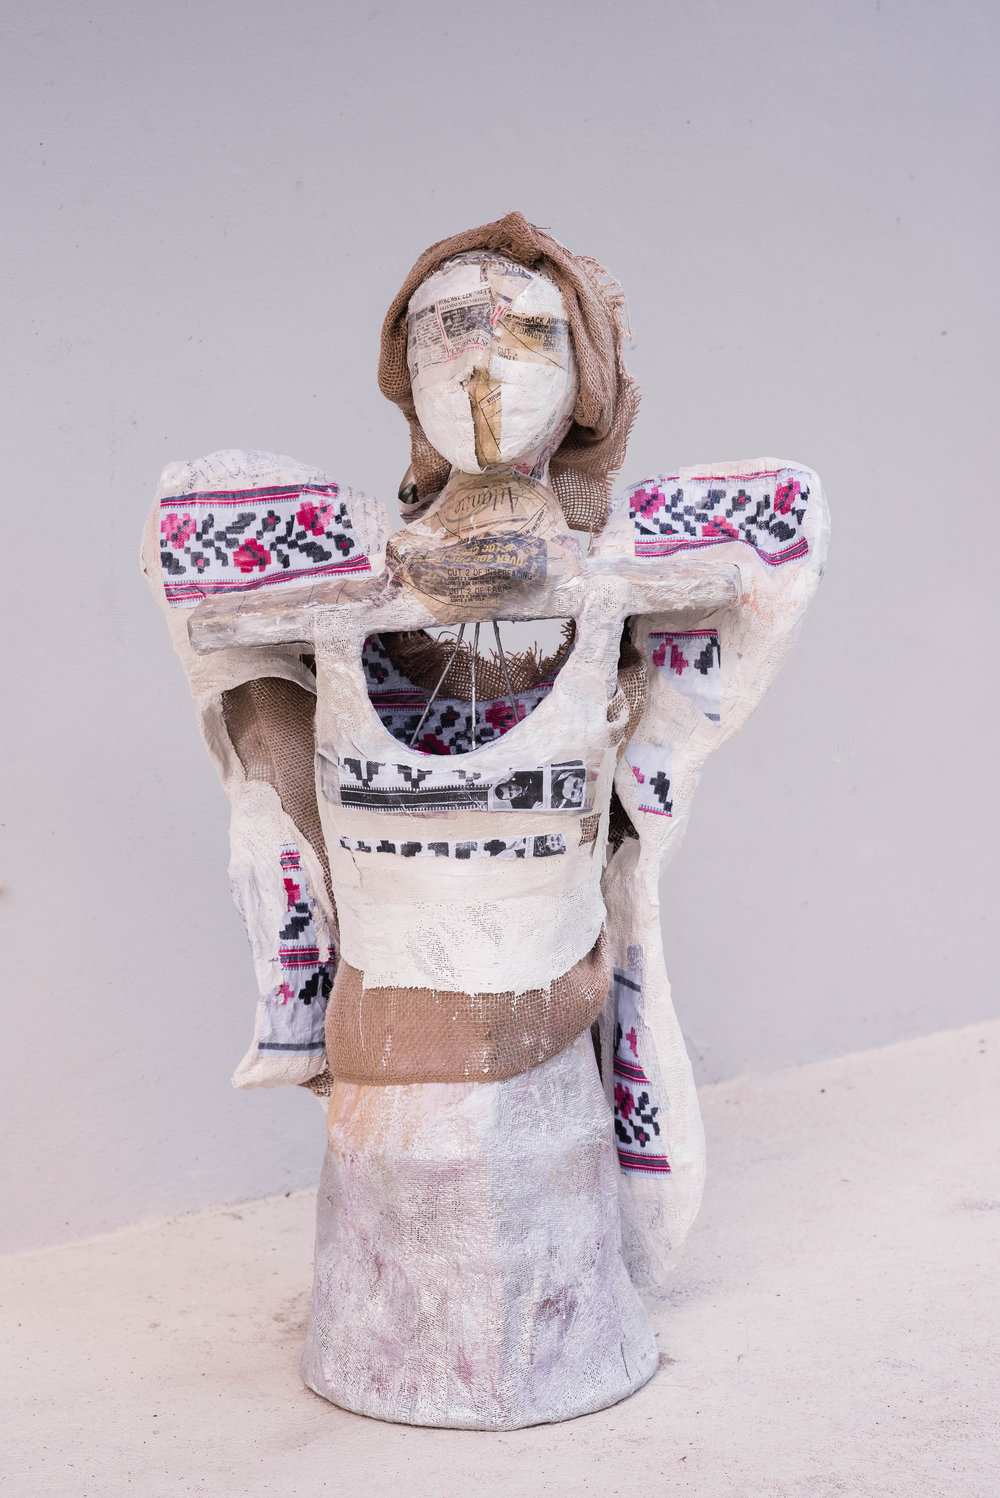 Cageless  1.0 x 0.5 meters, 2018 Paper mache, plaster of paris, styrofoam, cardboard, acrylic paint, paper, duct tape, wires, fabric, spray paint